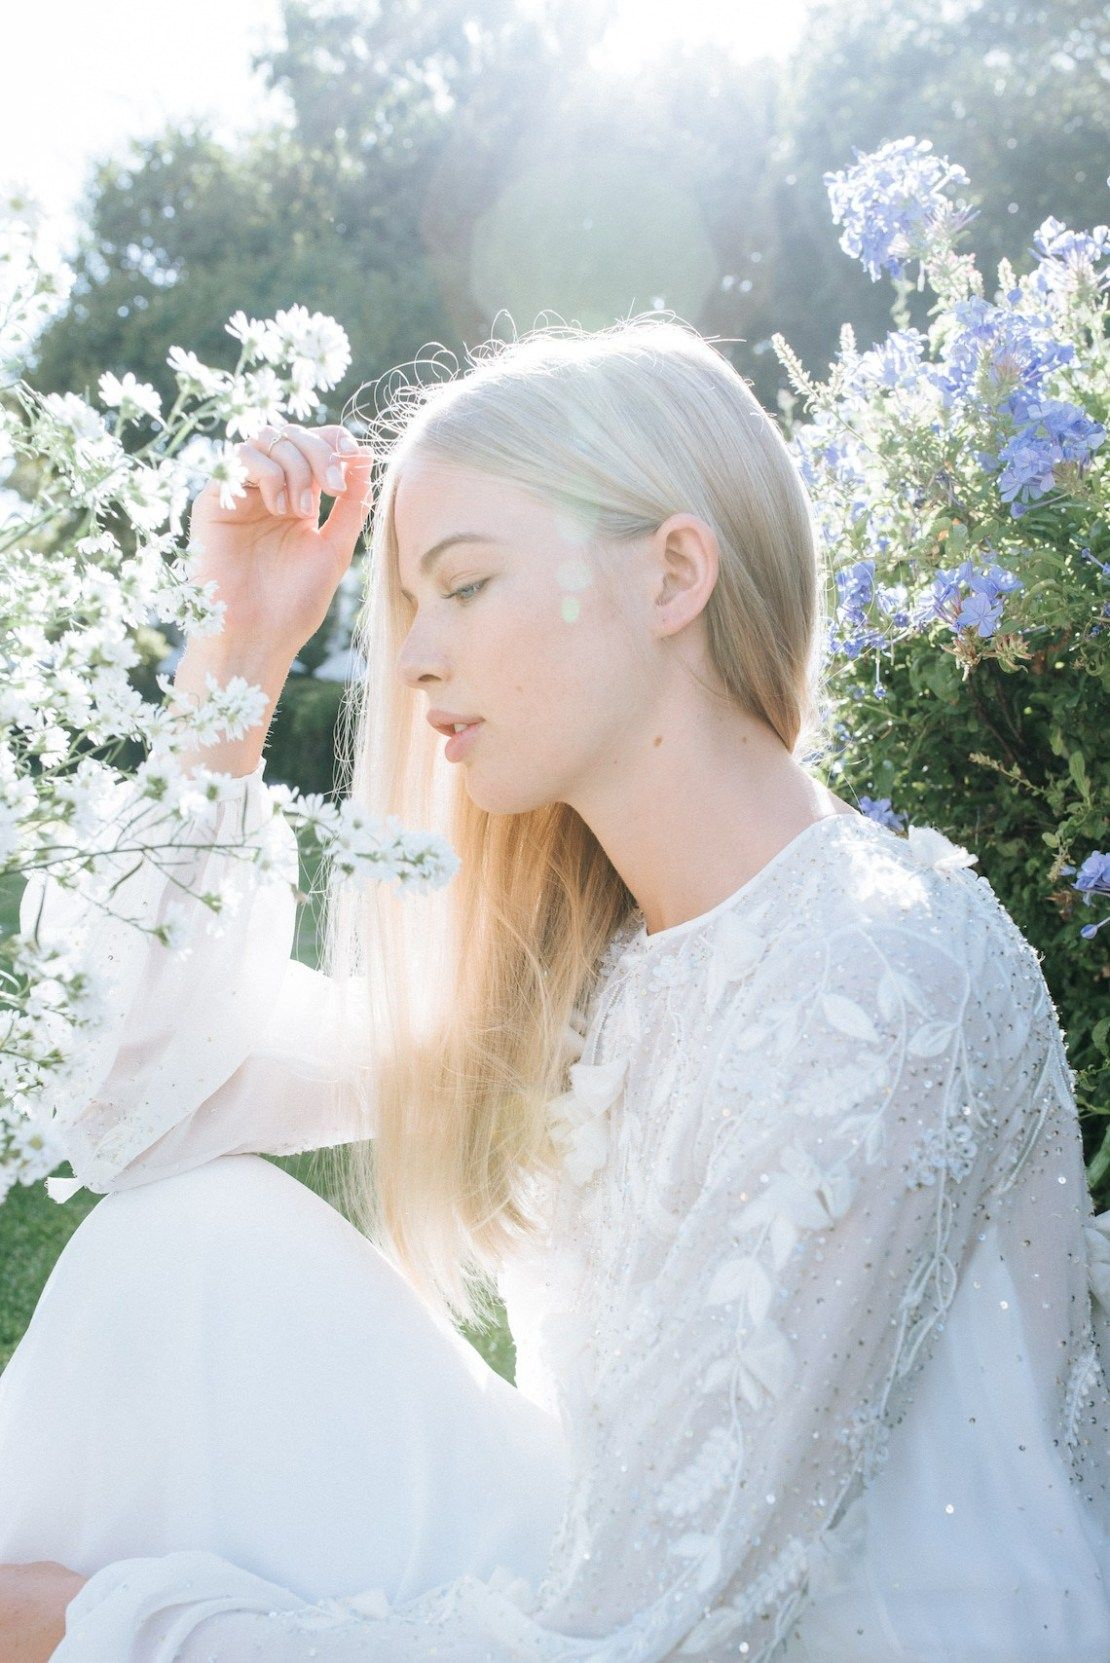 Ethereal florals wedding dresses for the cool bride